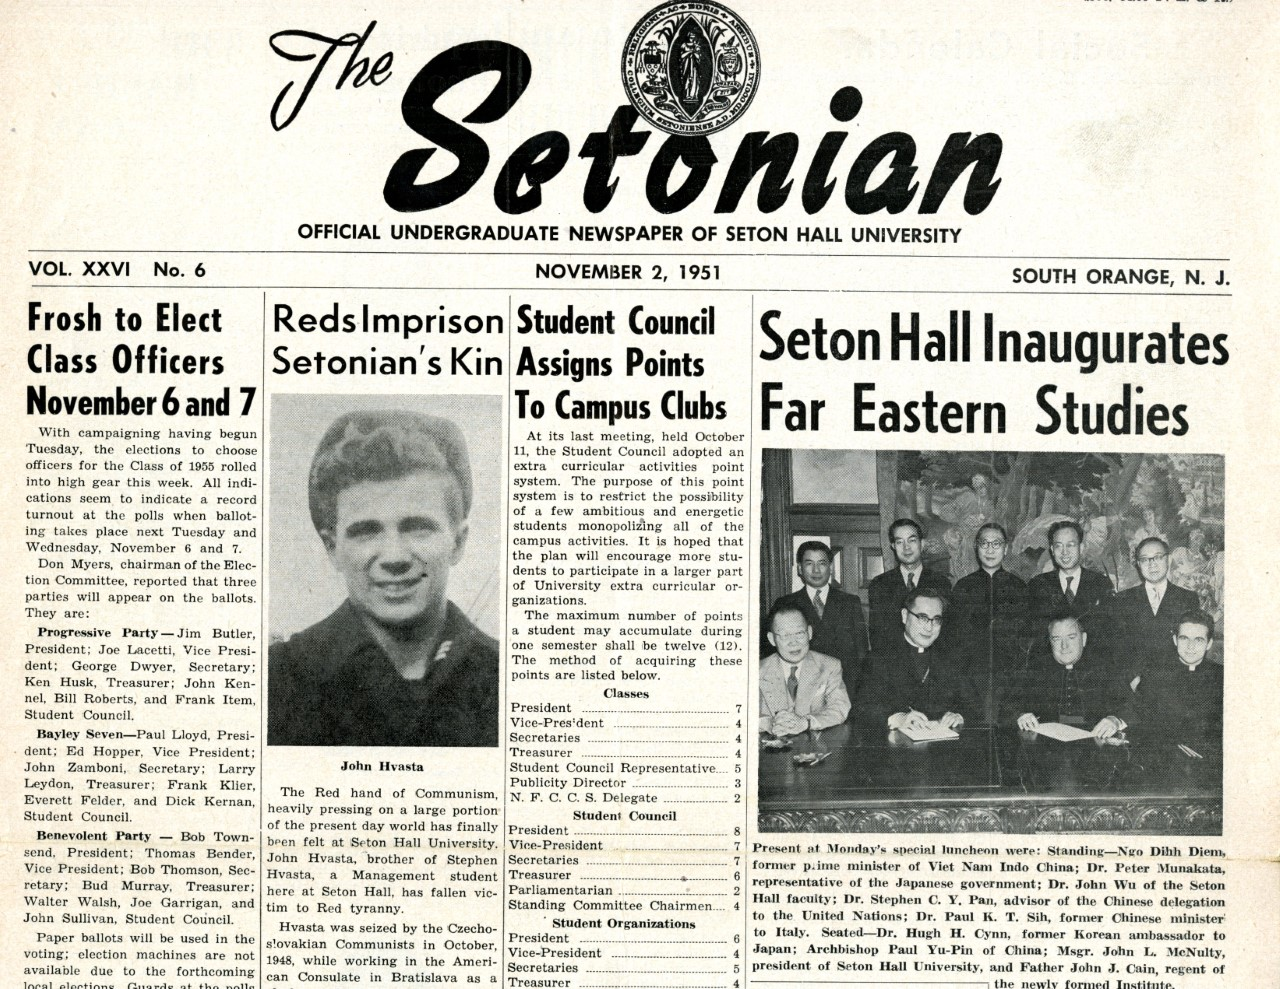 The Setonian_Seton Hall inaugurates Far Eastern Studies